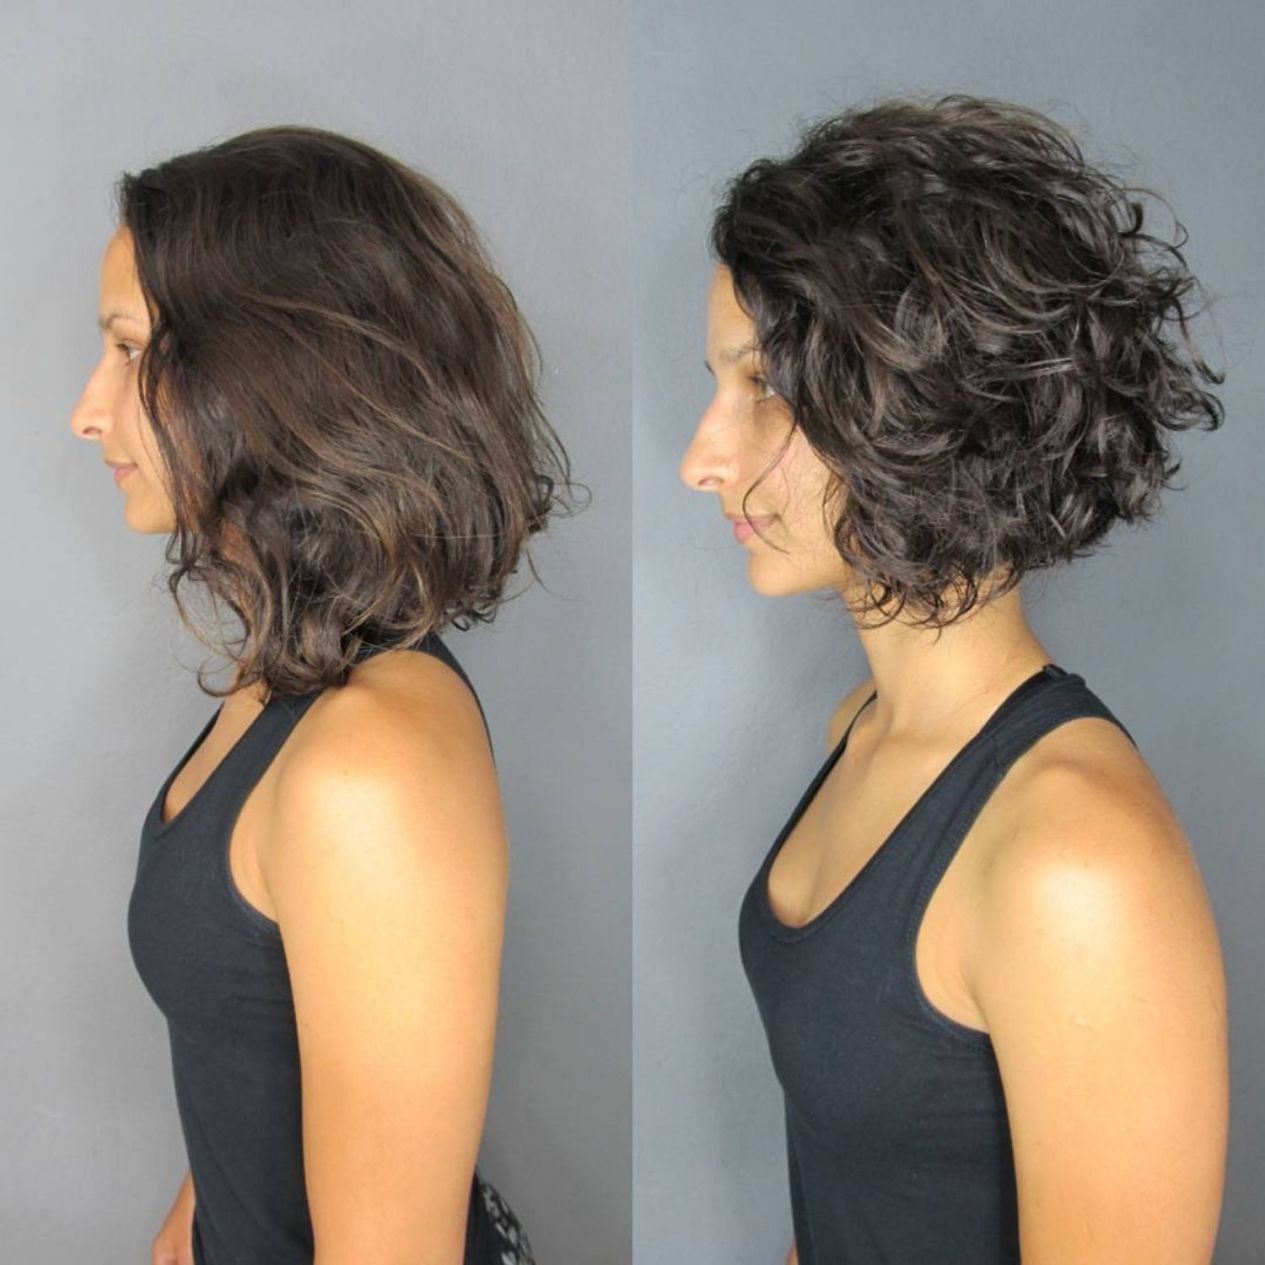 60 Most Delightful Short Wavy Hairstyles In 2020 Medium Hair Styles Angled Bob Hairstyles Short Curly Bob Hairstyles